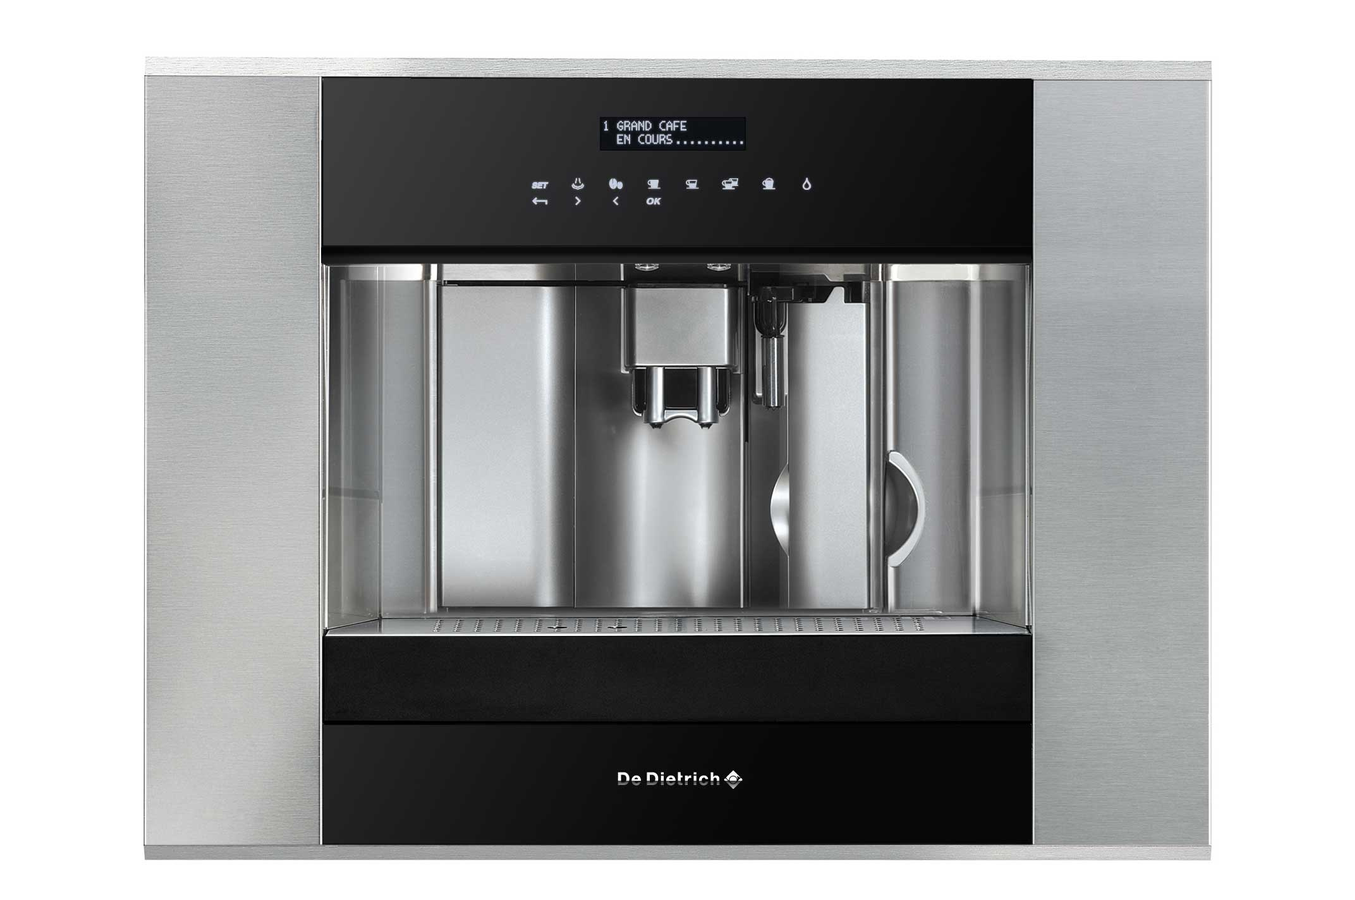 machine caf encastrable de dietrich ded1140x noir inox. Black Bedroom Furniture Sets. Home Design Ideas